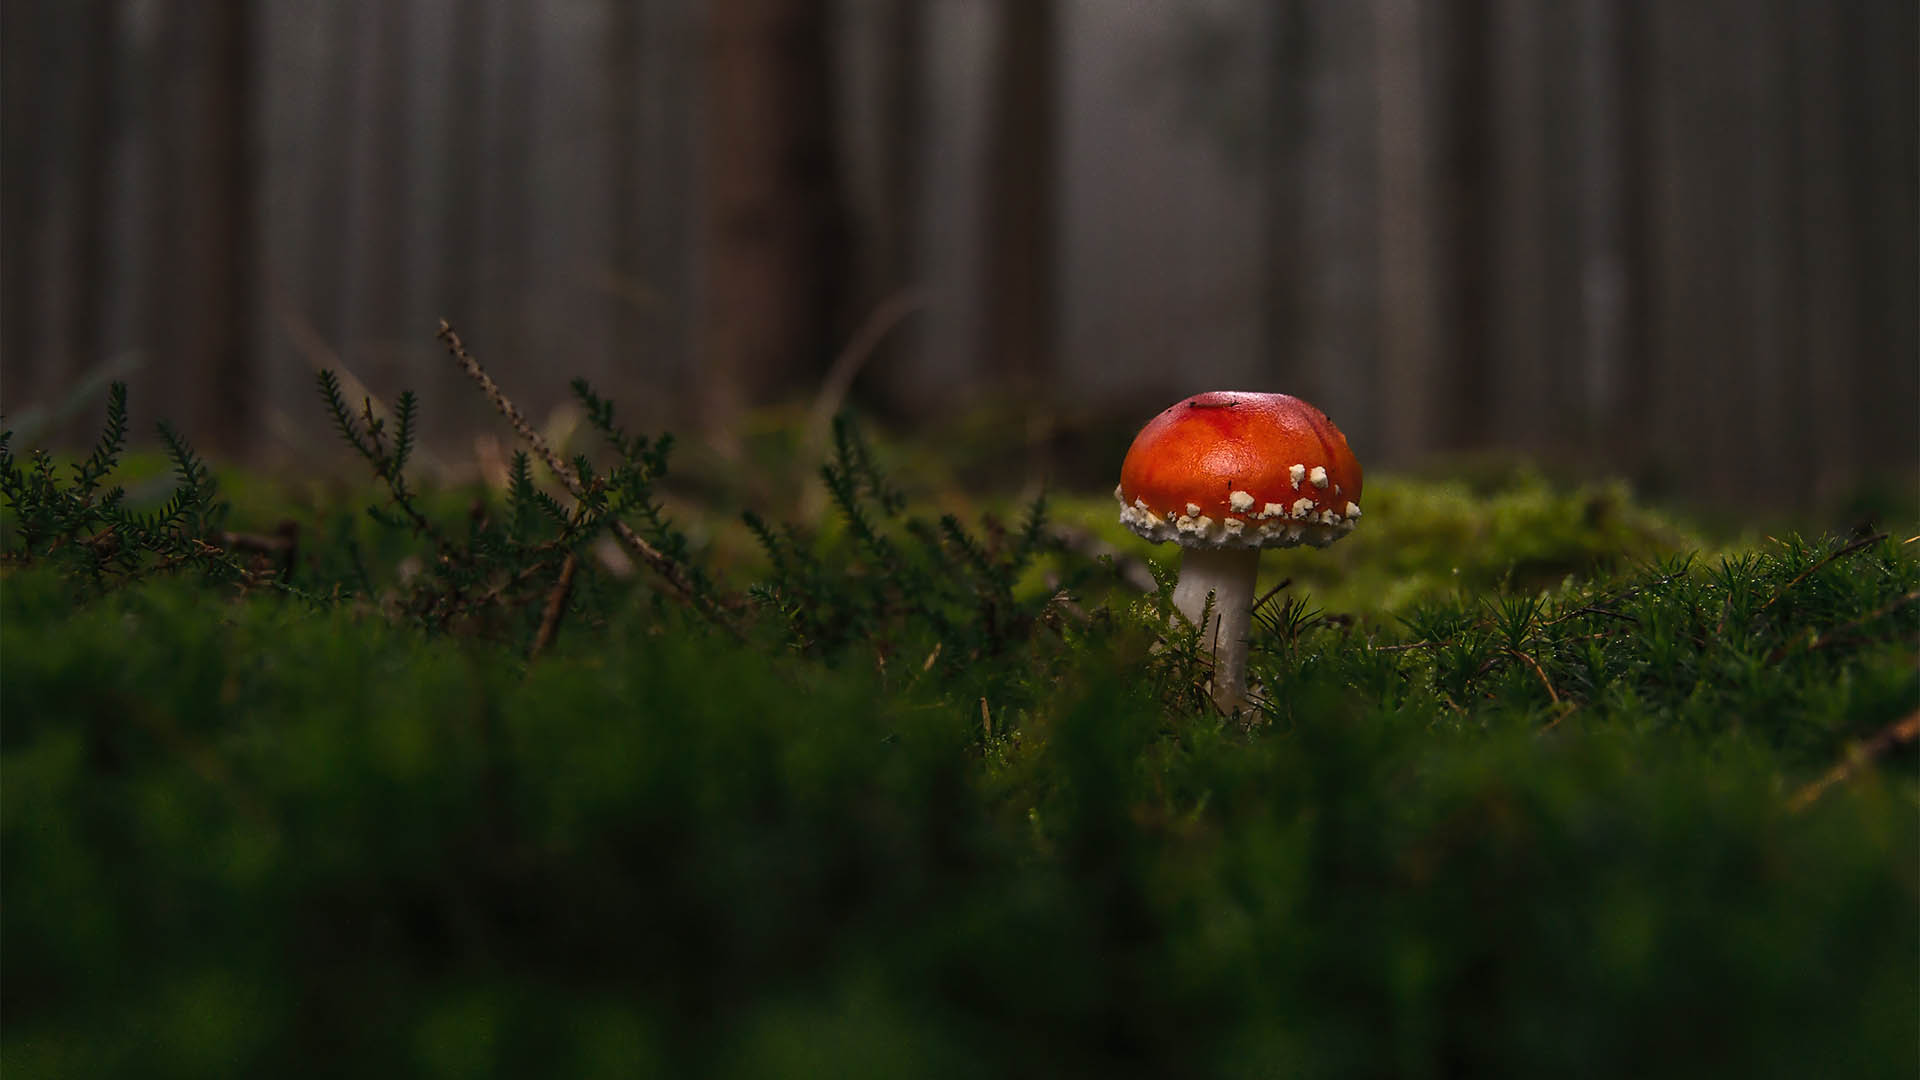 Fly agaric mythology and folklore | Trees for Life